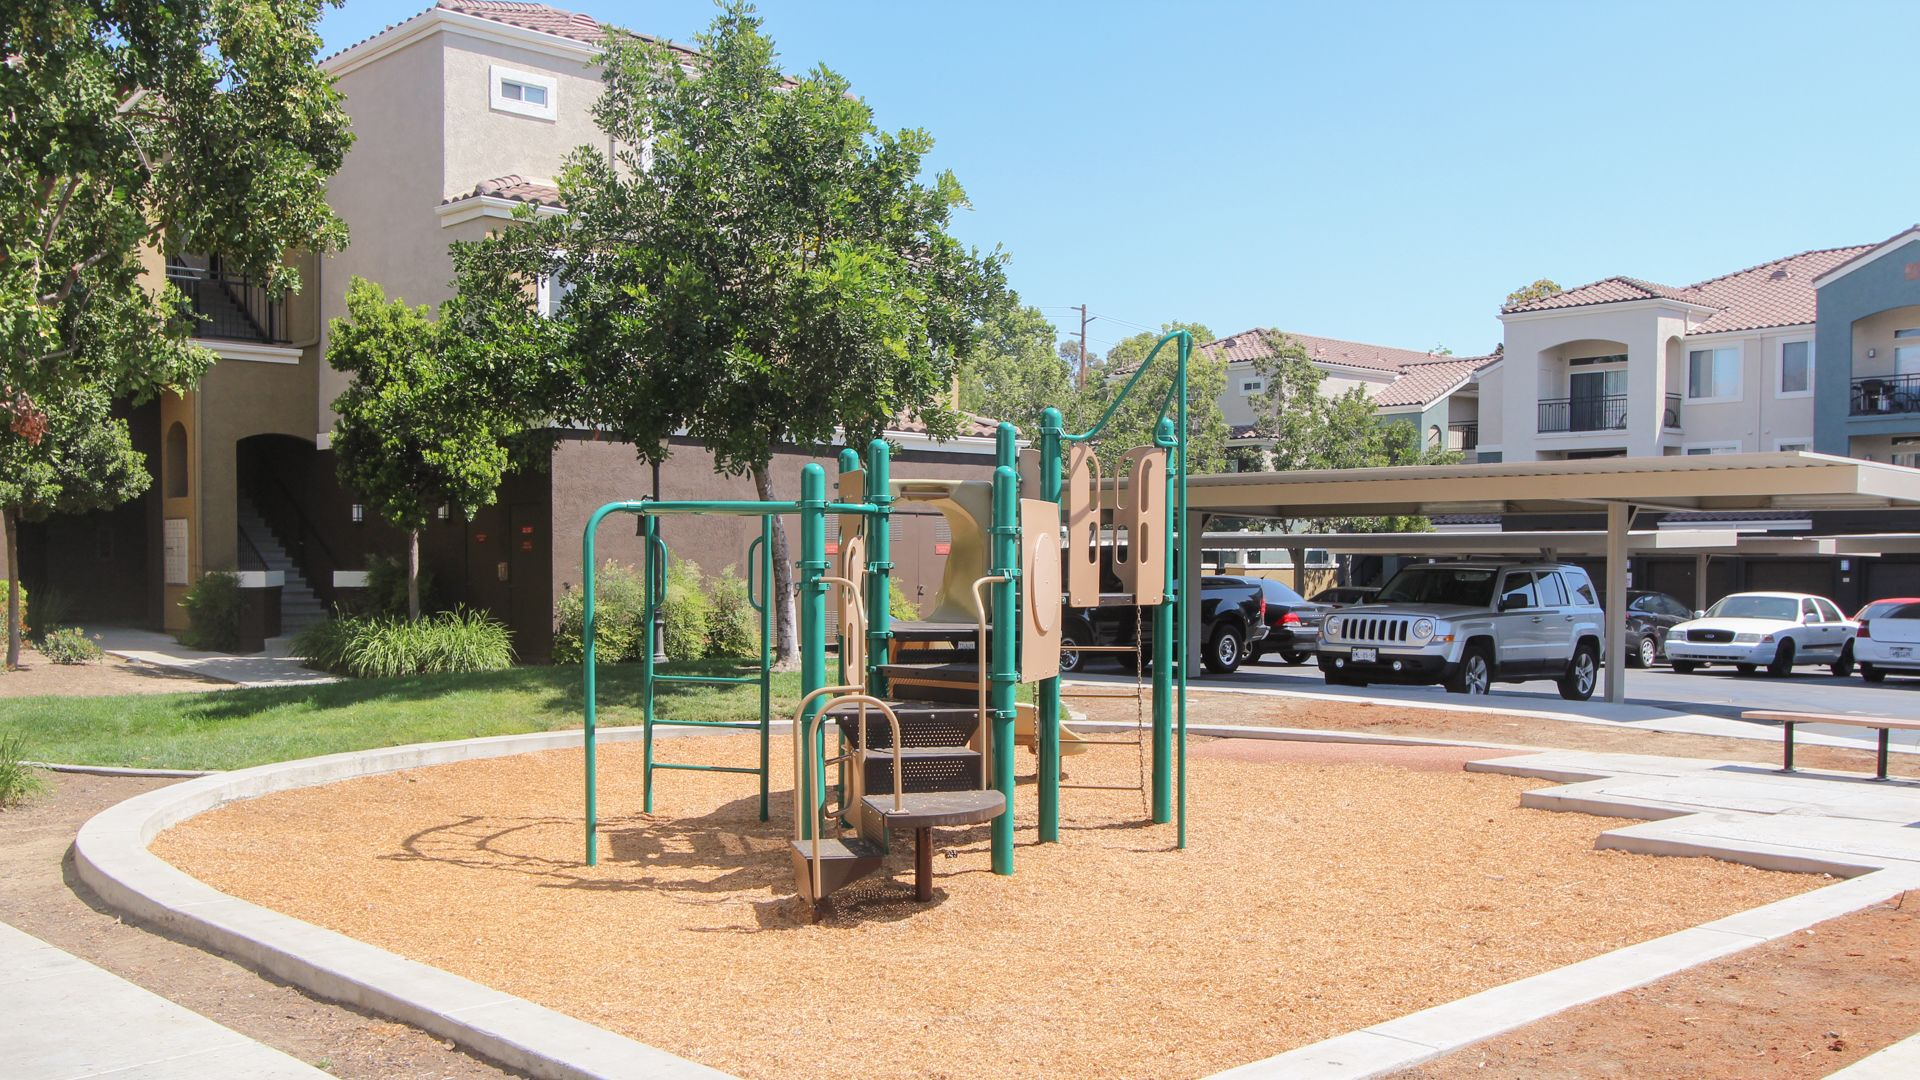 Centre Club Apartments - Playground